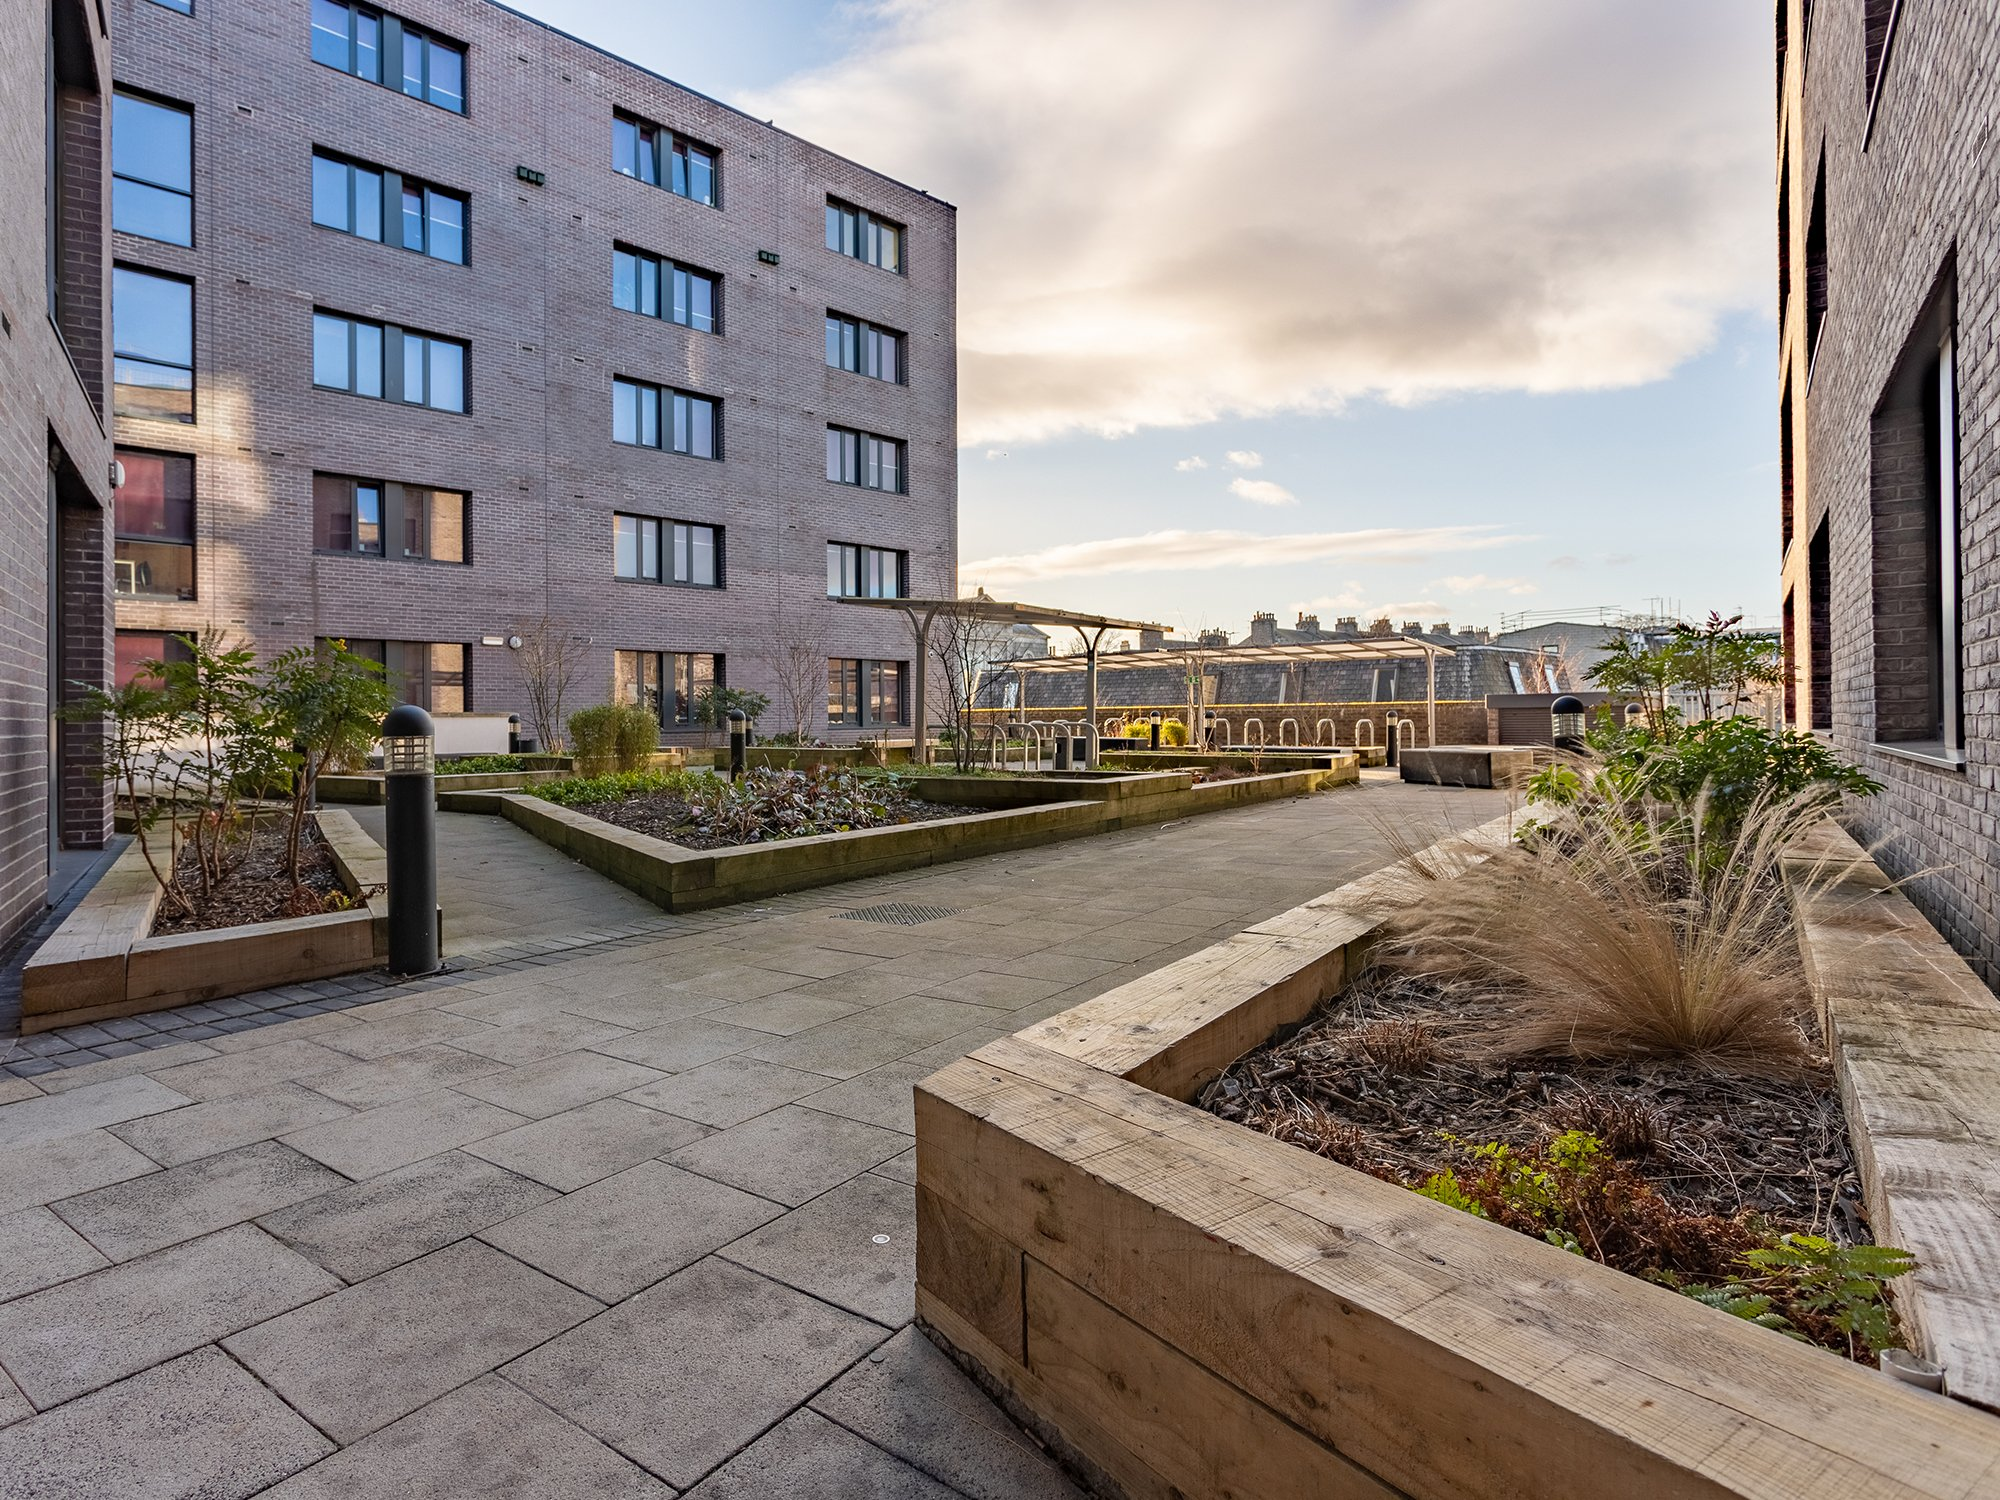 Powis Place Court Yard Student Accommodation